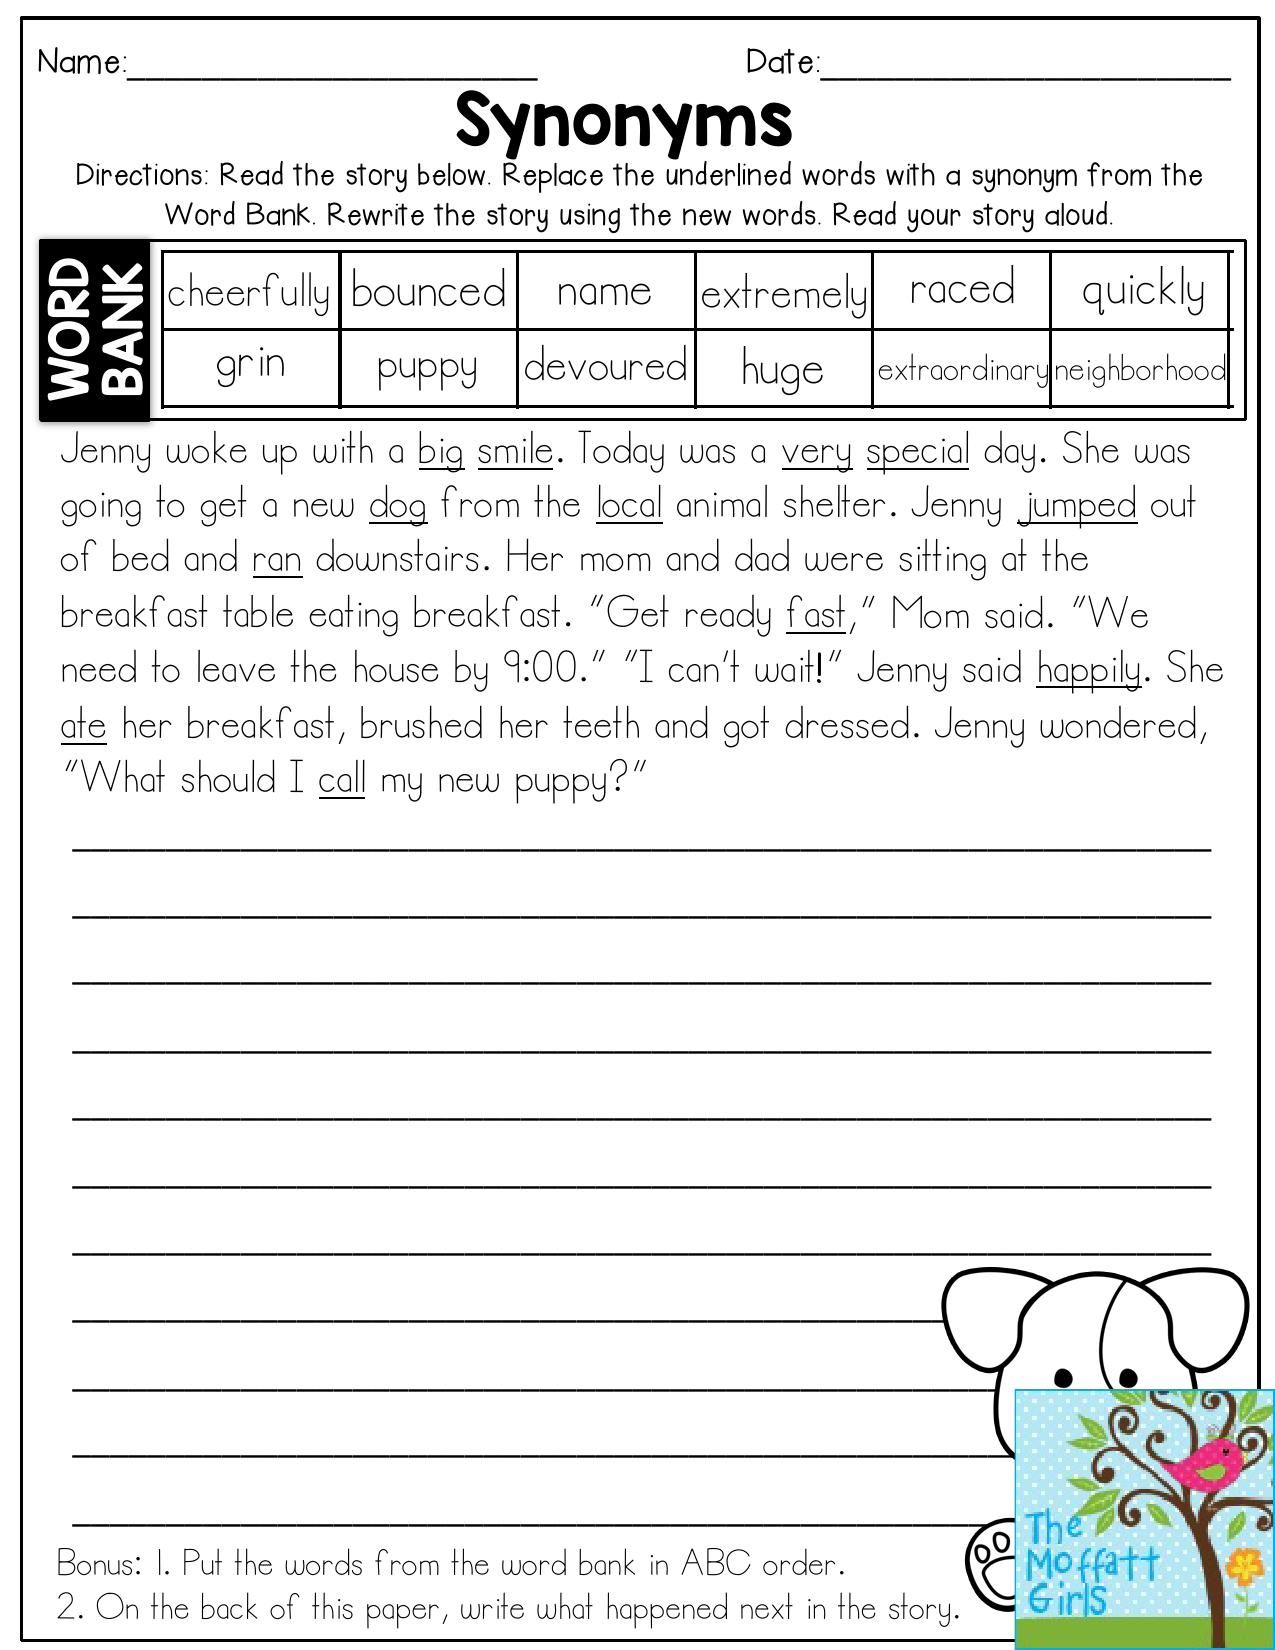 Synonyms- Read The Story And Replace The Underlined Words With | Free Printable Worksheets Synonyms Antonyms And Homonyms